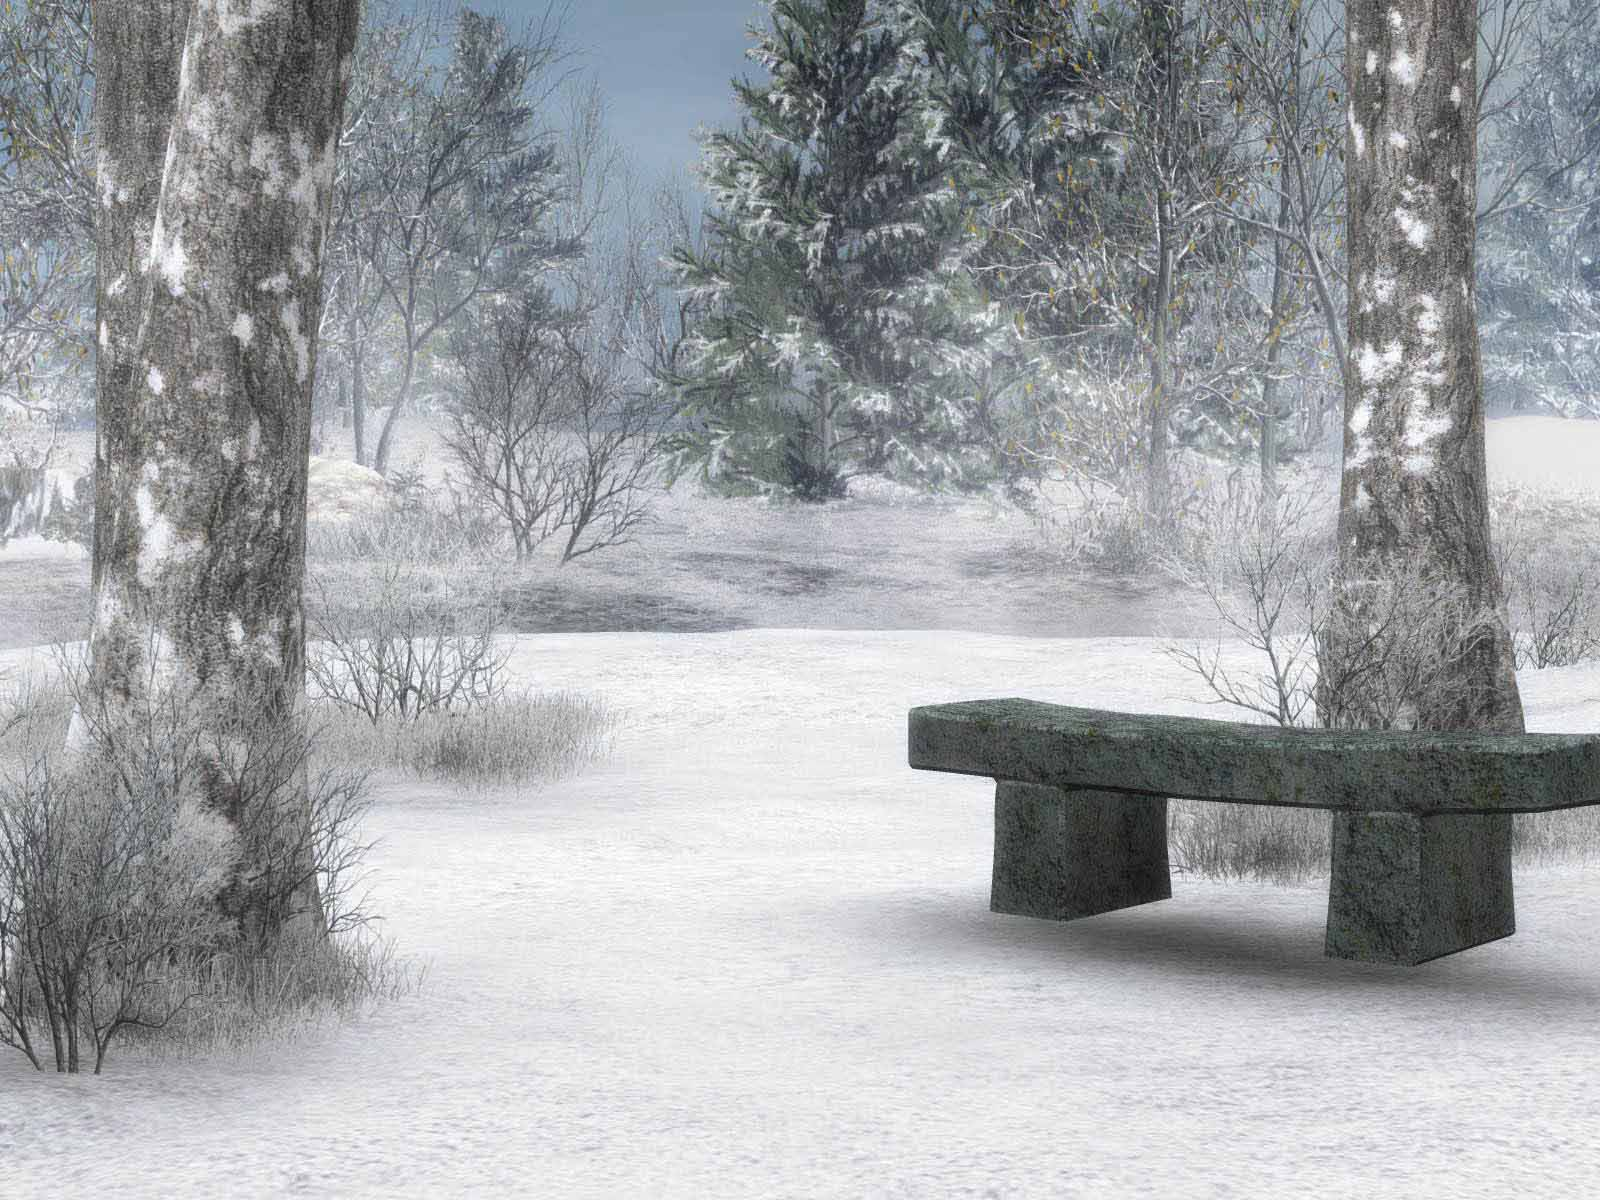 HD Wallpapers Winter Scenes for Desktop 1600x1200